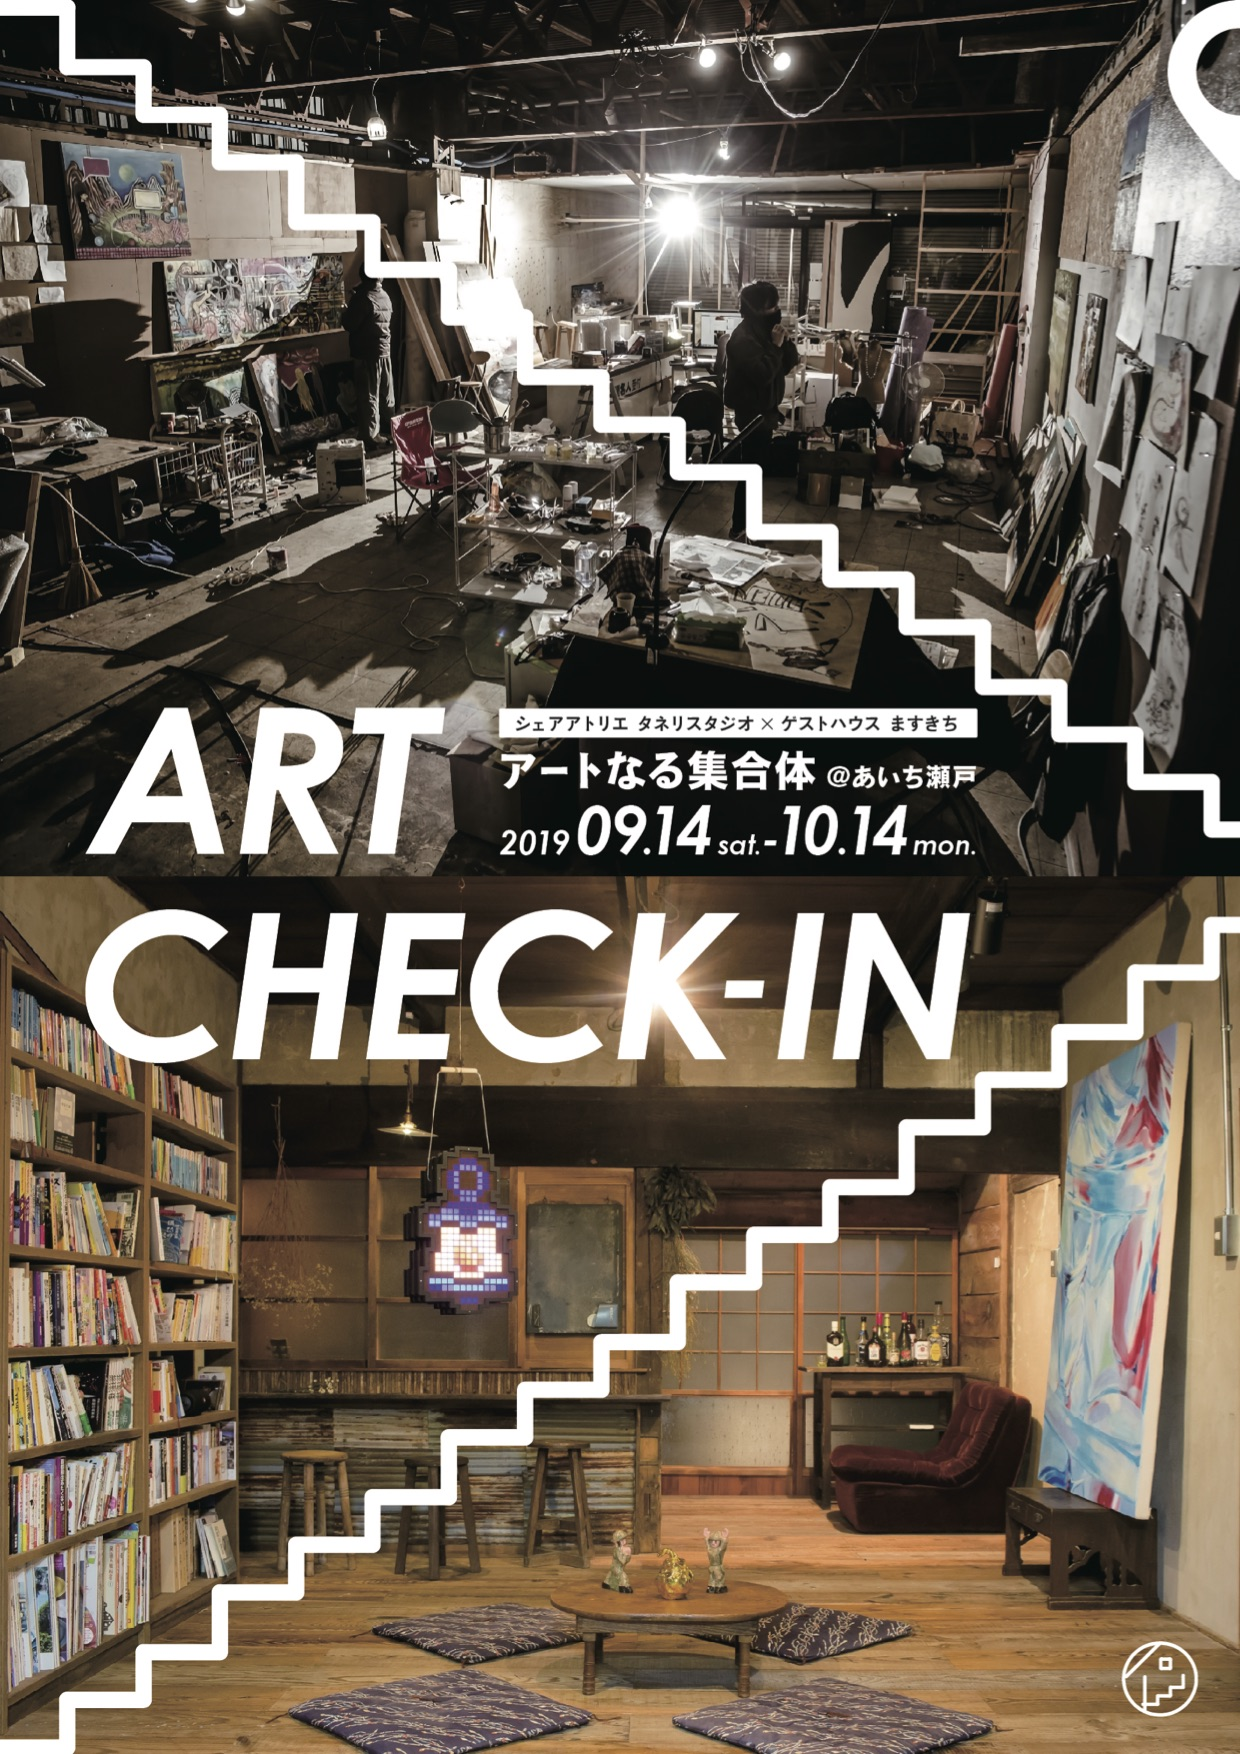 ART CHECK-IN